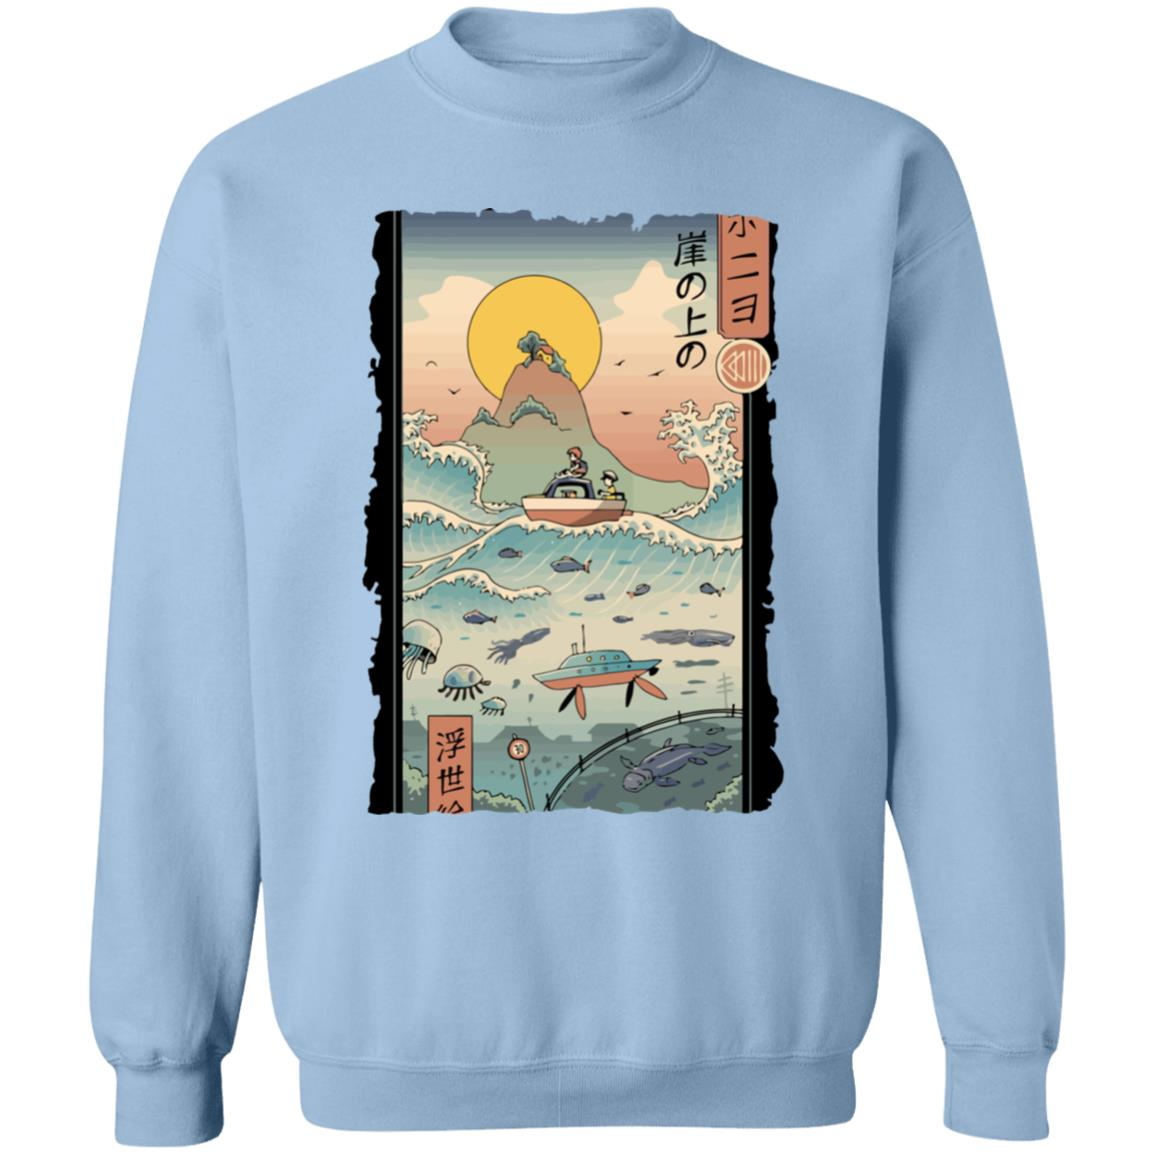 Ponyo By The Sea Classic Sweatshirt